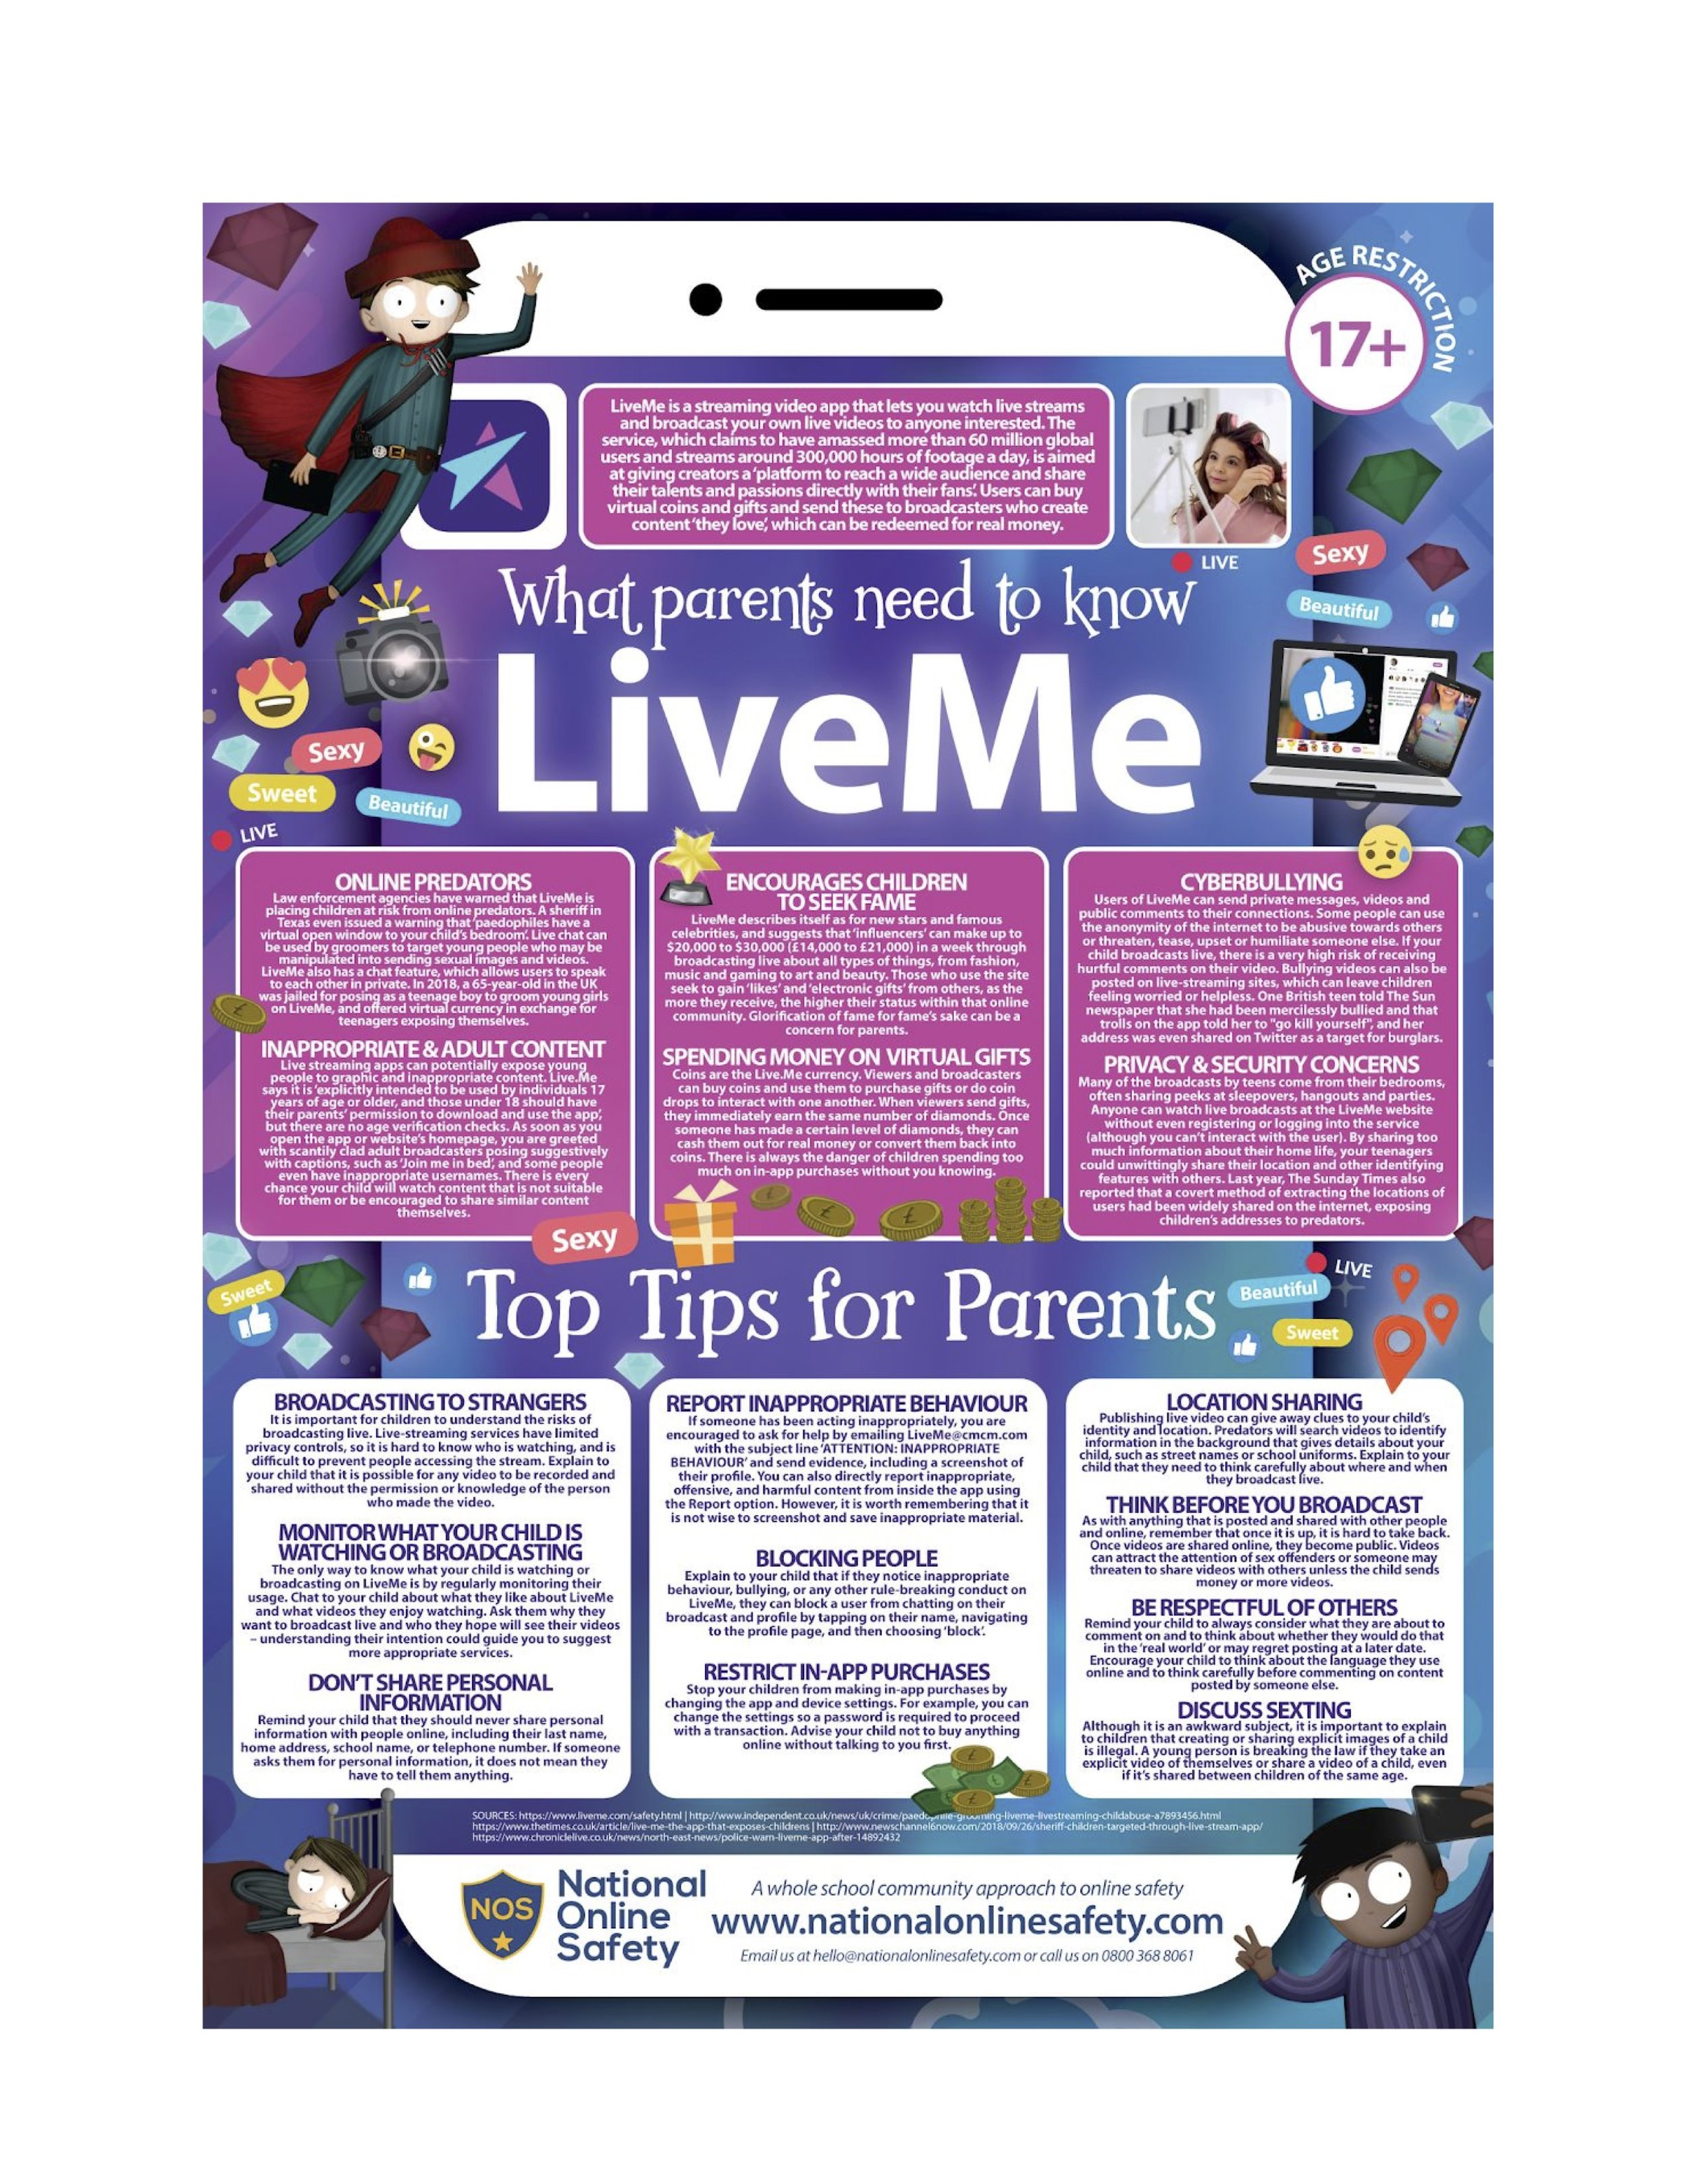 Advice for Parents About Children's Use of LiveMe